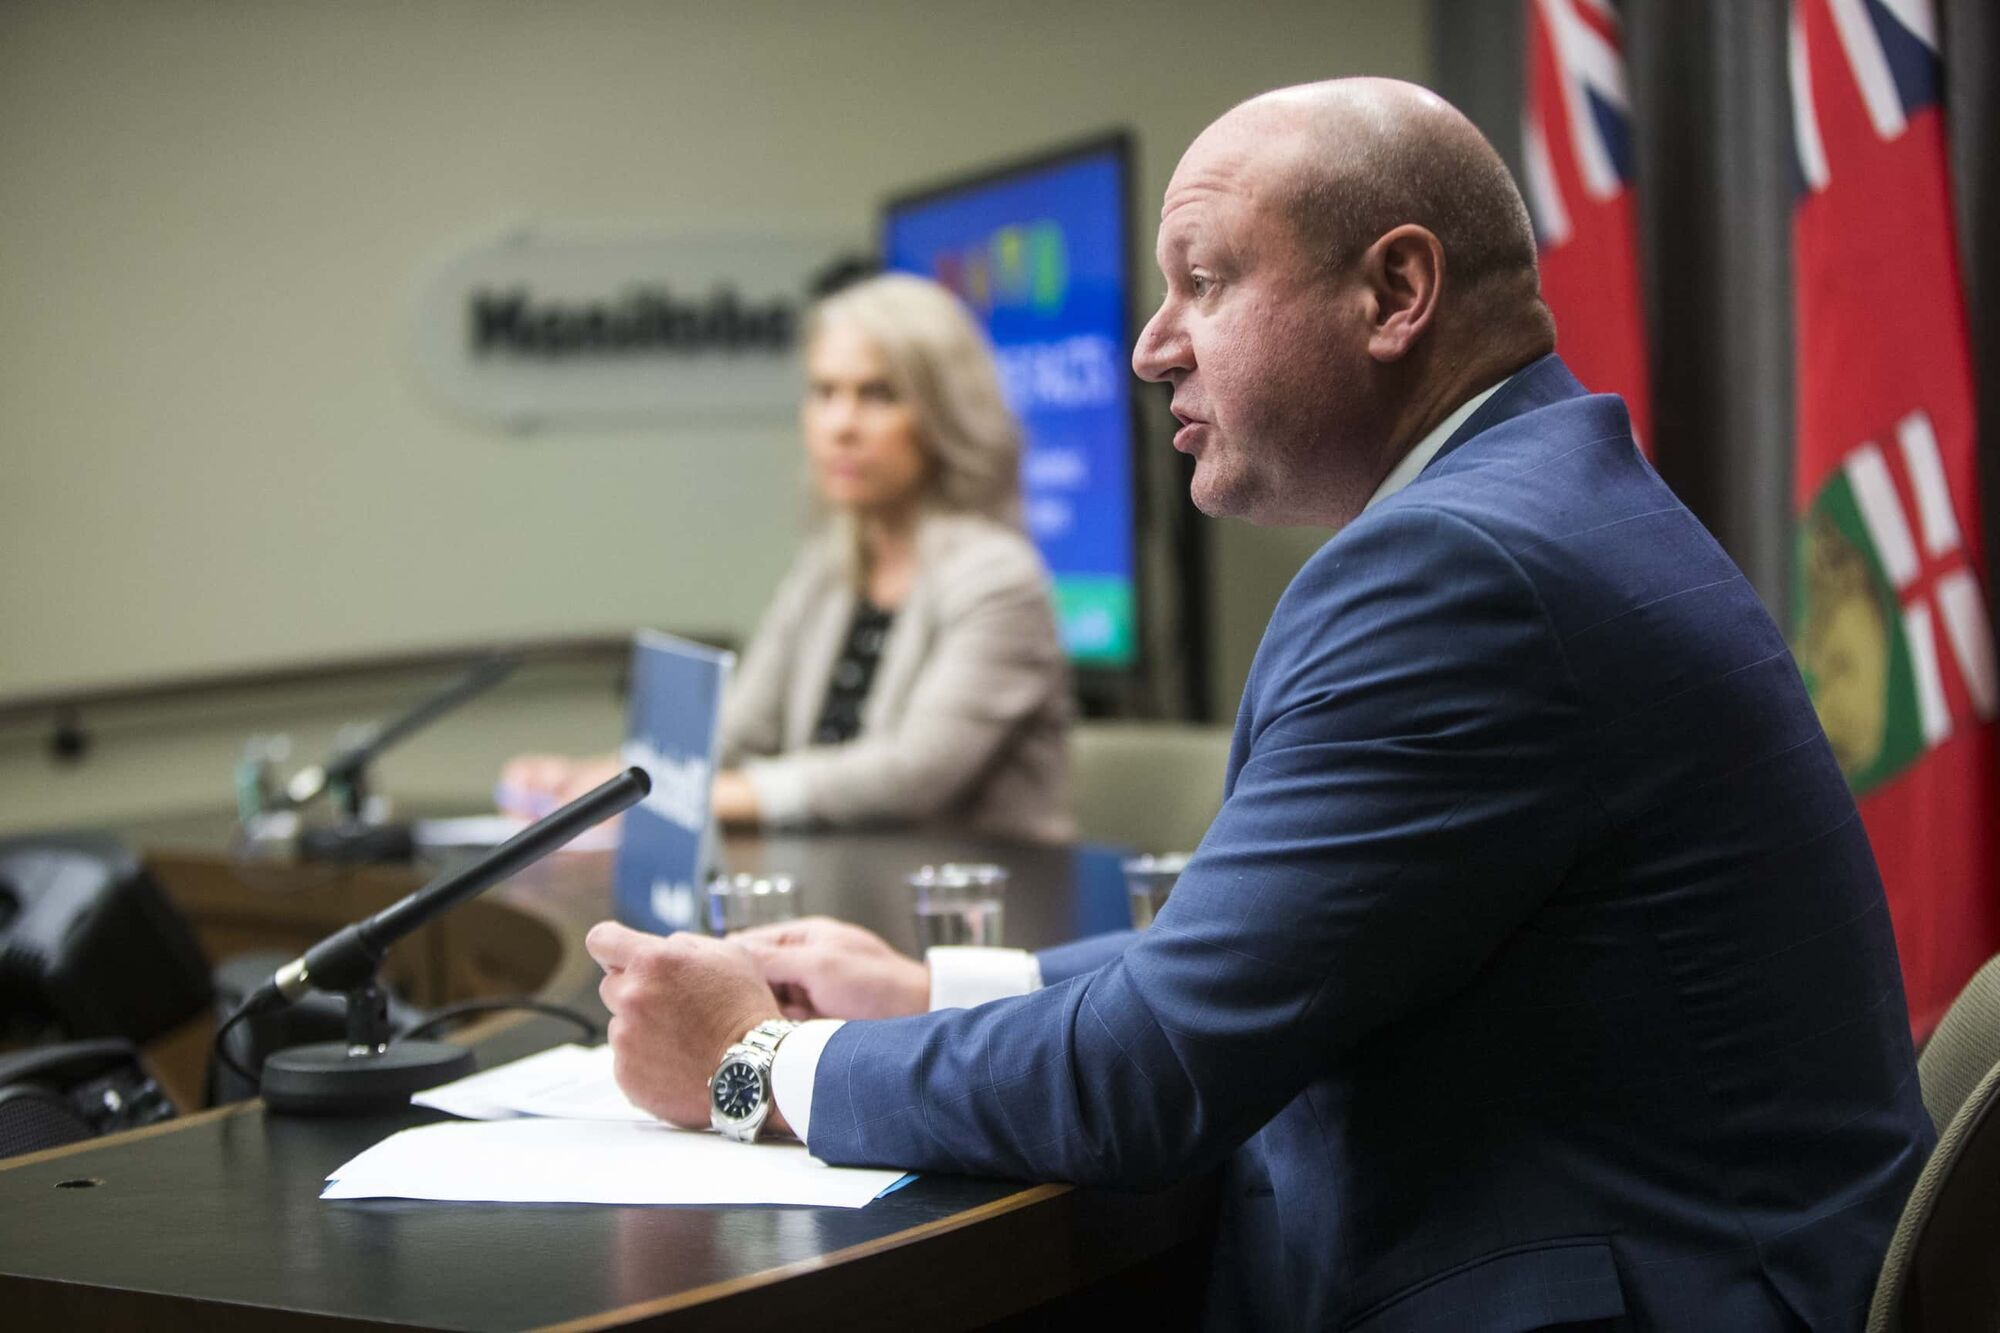 Dr. Brent Roussin, chief provincial public health officer, and Shared Health chief nursing officer Lanette Siragusa speak about the latest COVID-19 numbers on Monday. (Mikaela MacKenzie / Winnipeg Free Press)